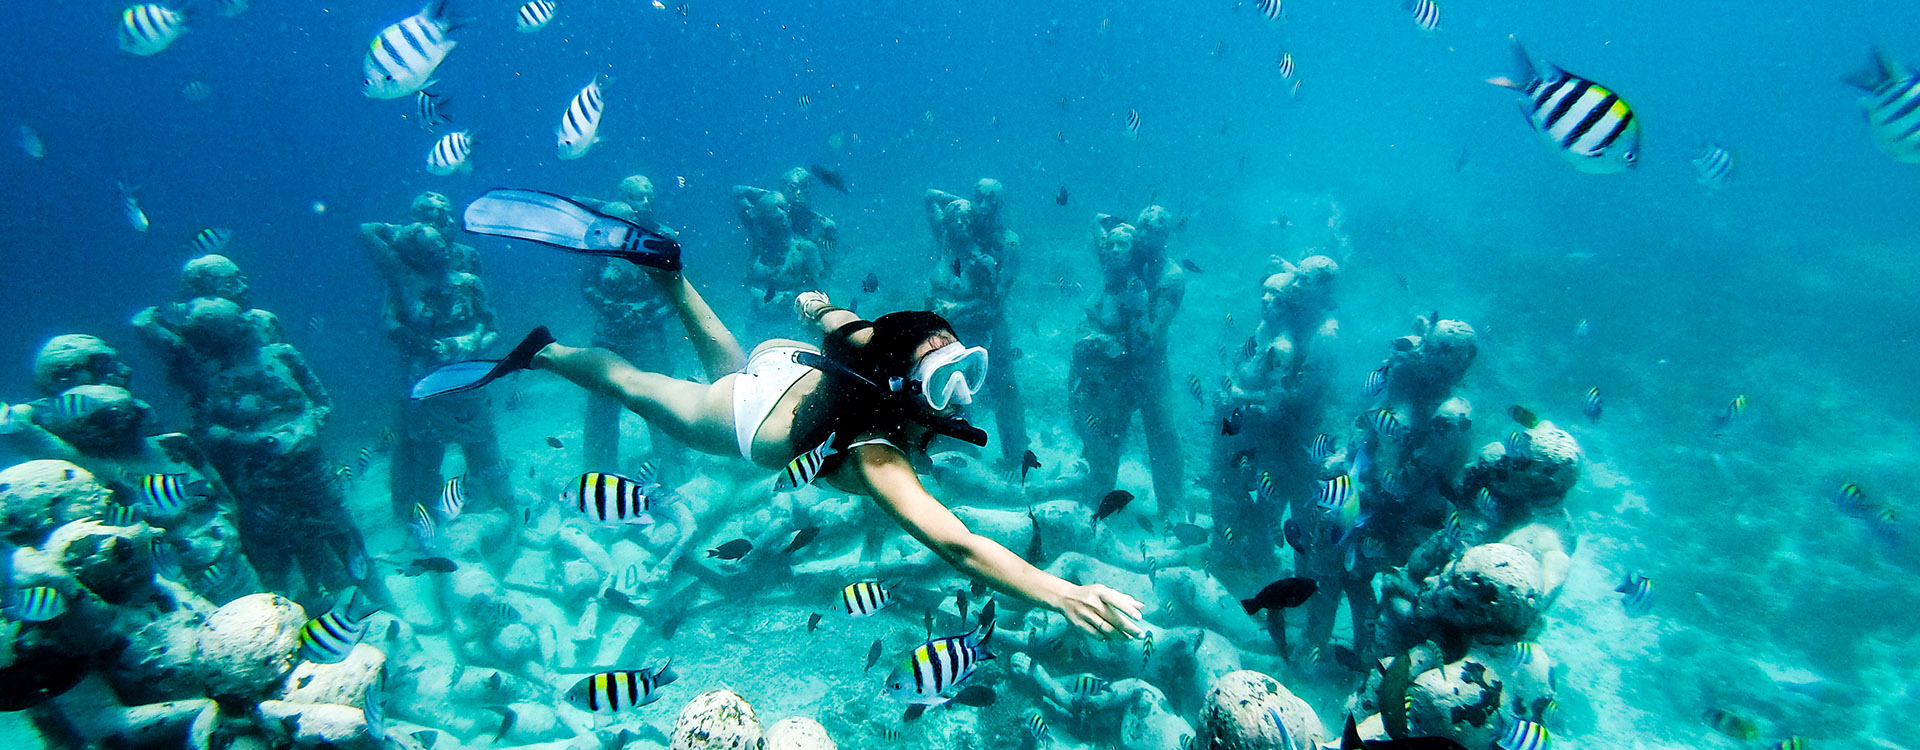 Snorkel woman swimming in a turquoise ocean under the flooded statues. Free diving.